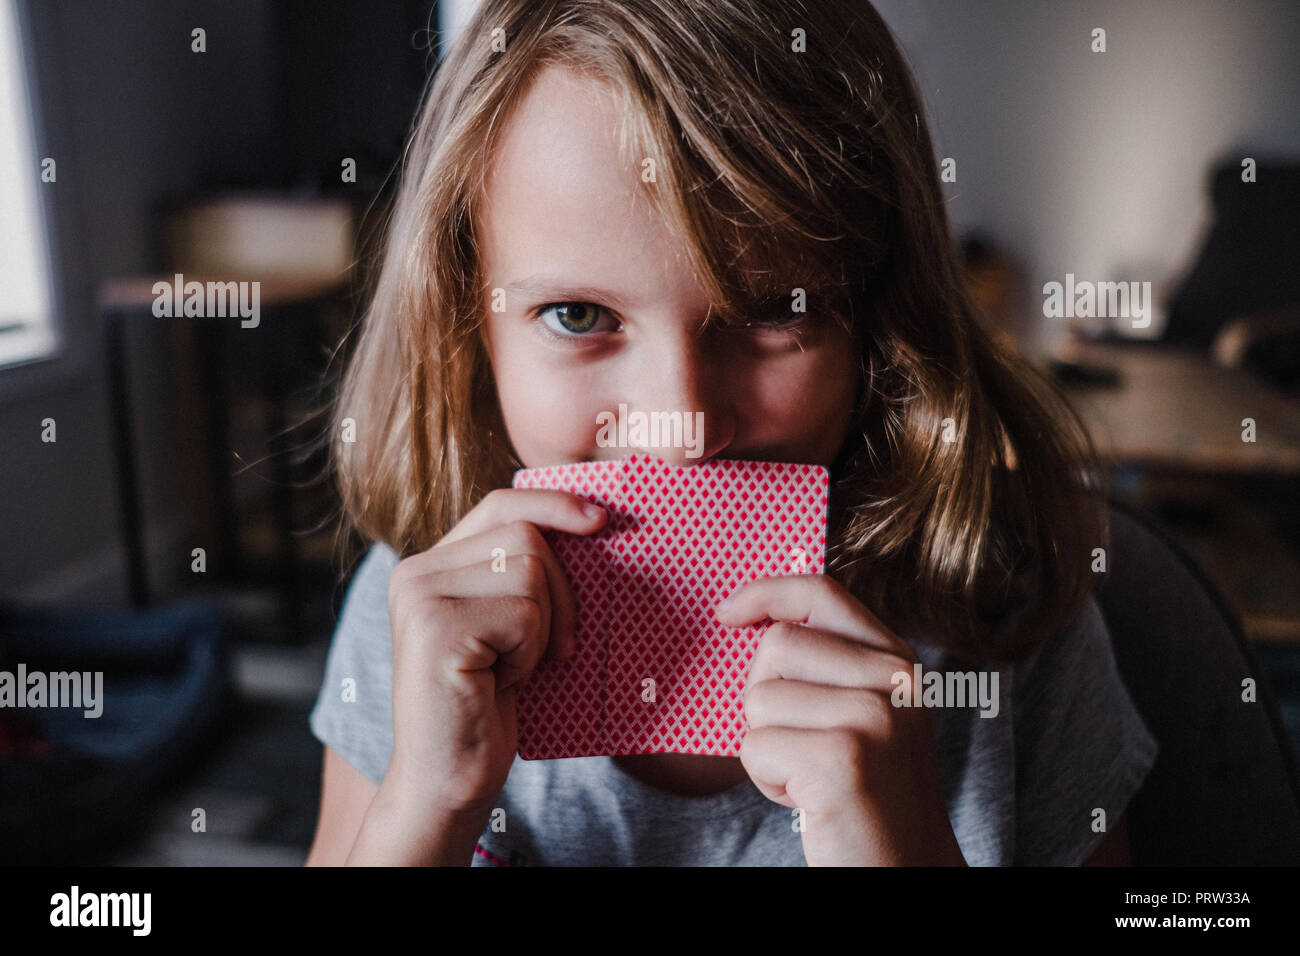 Girl hiding behind playing cards in living room, portrait - Stock Image